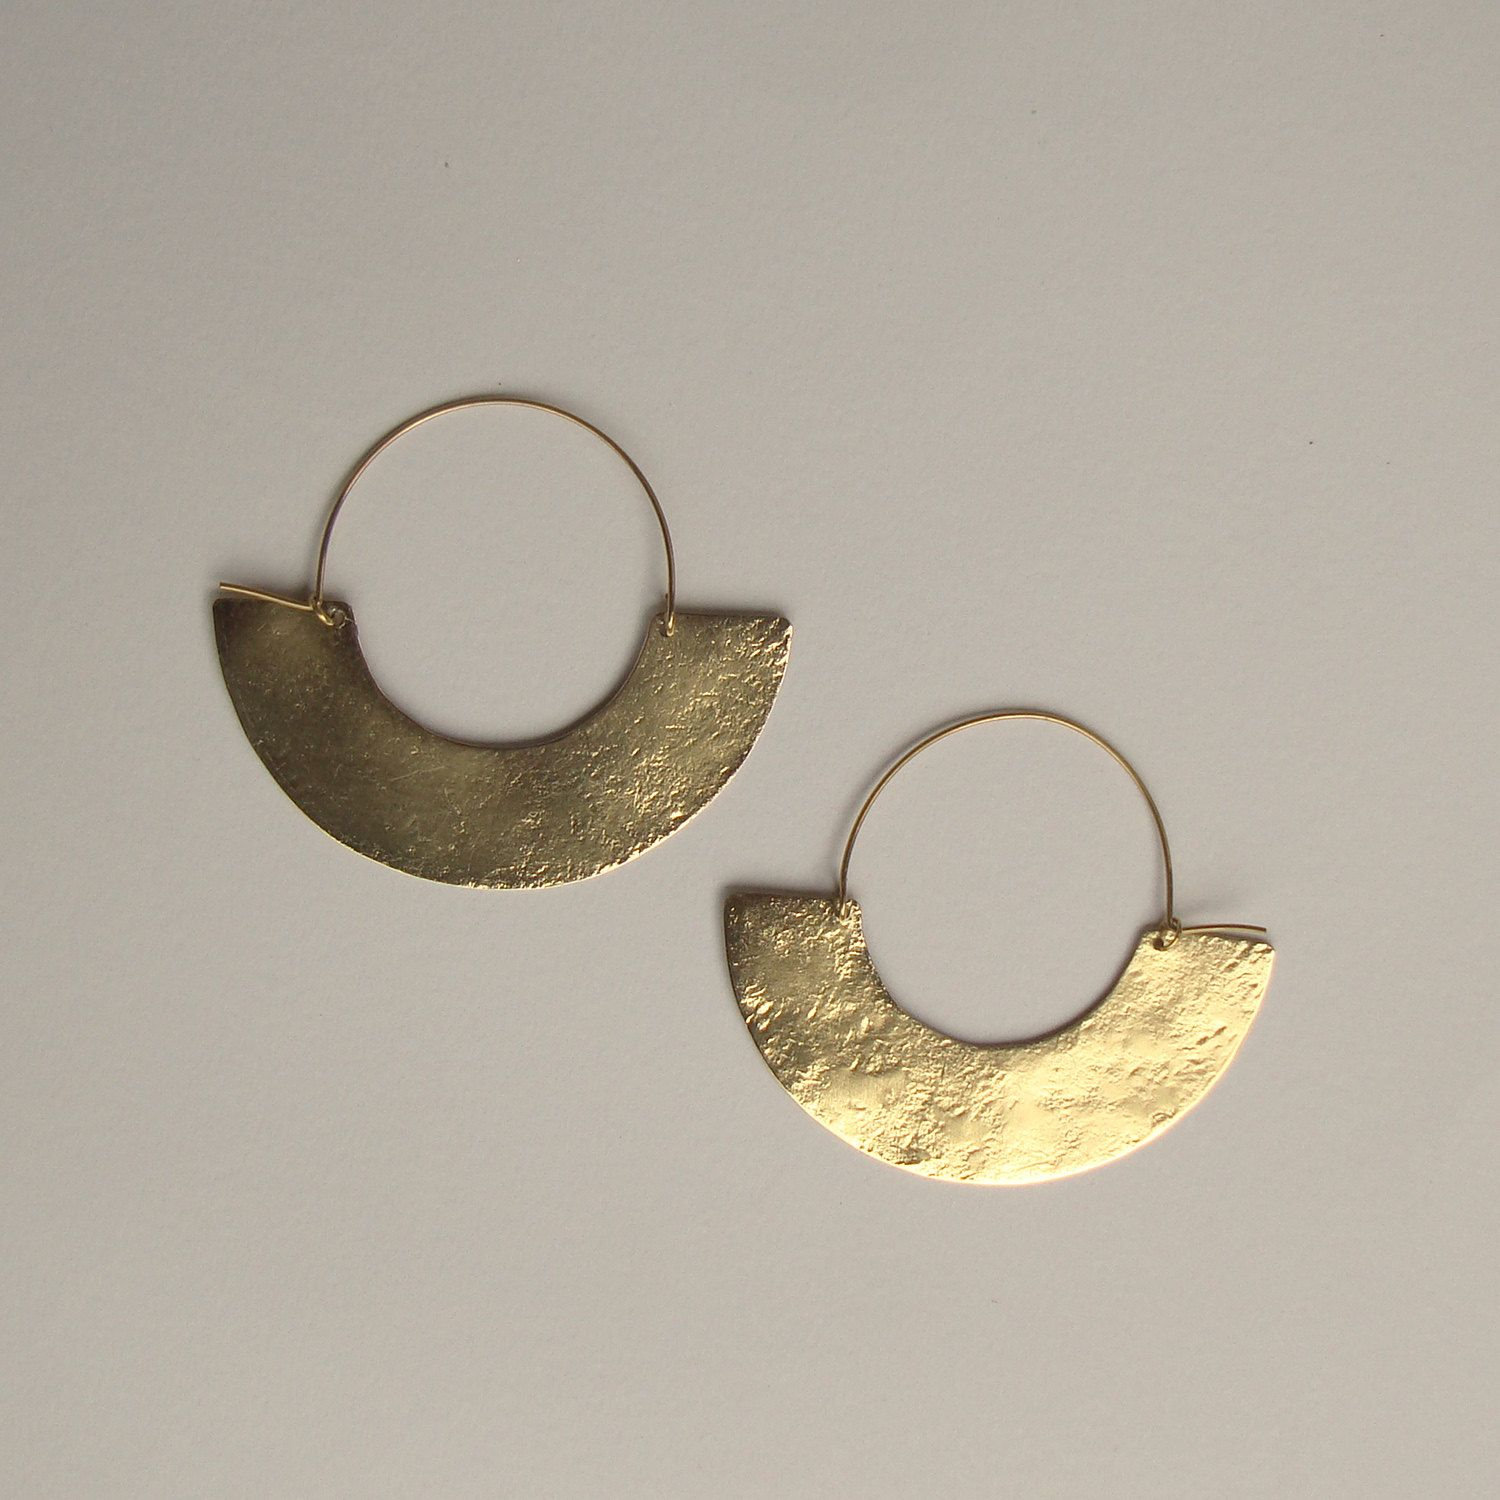 Hoop Earrings African Jewelry Ethnic Tribal Earring Minimalist By Havanaflamingo On Etsy